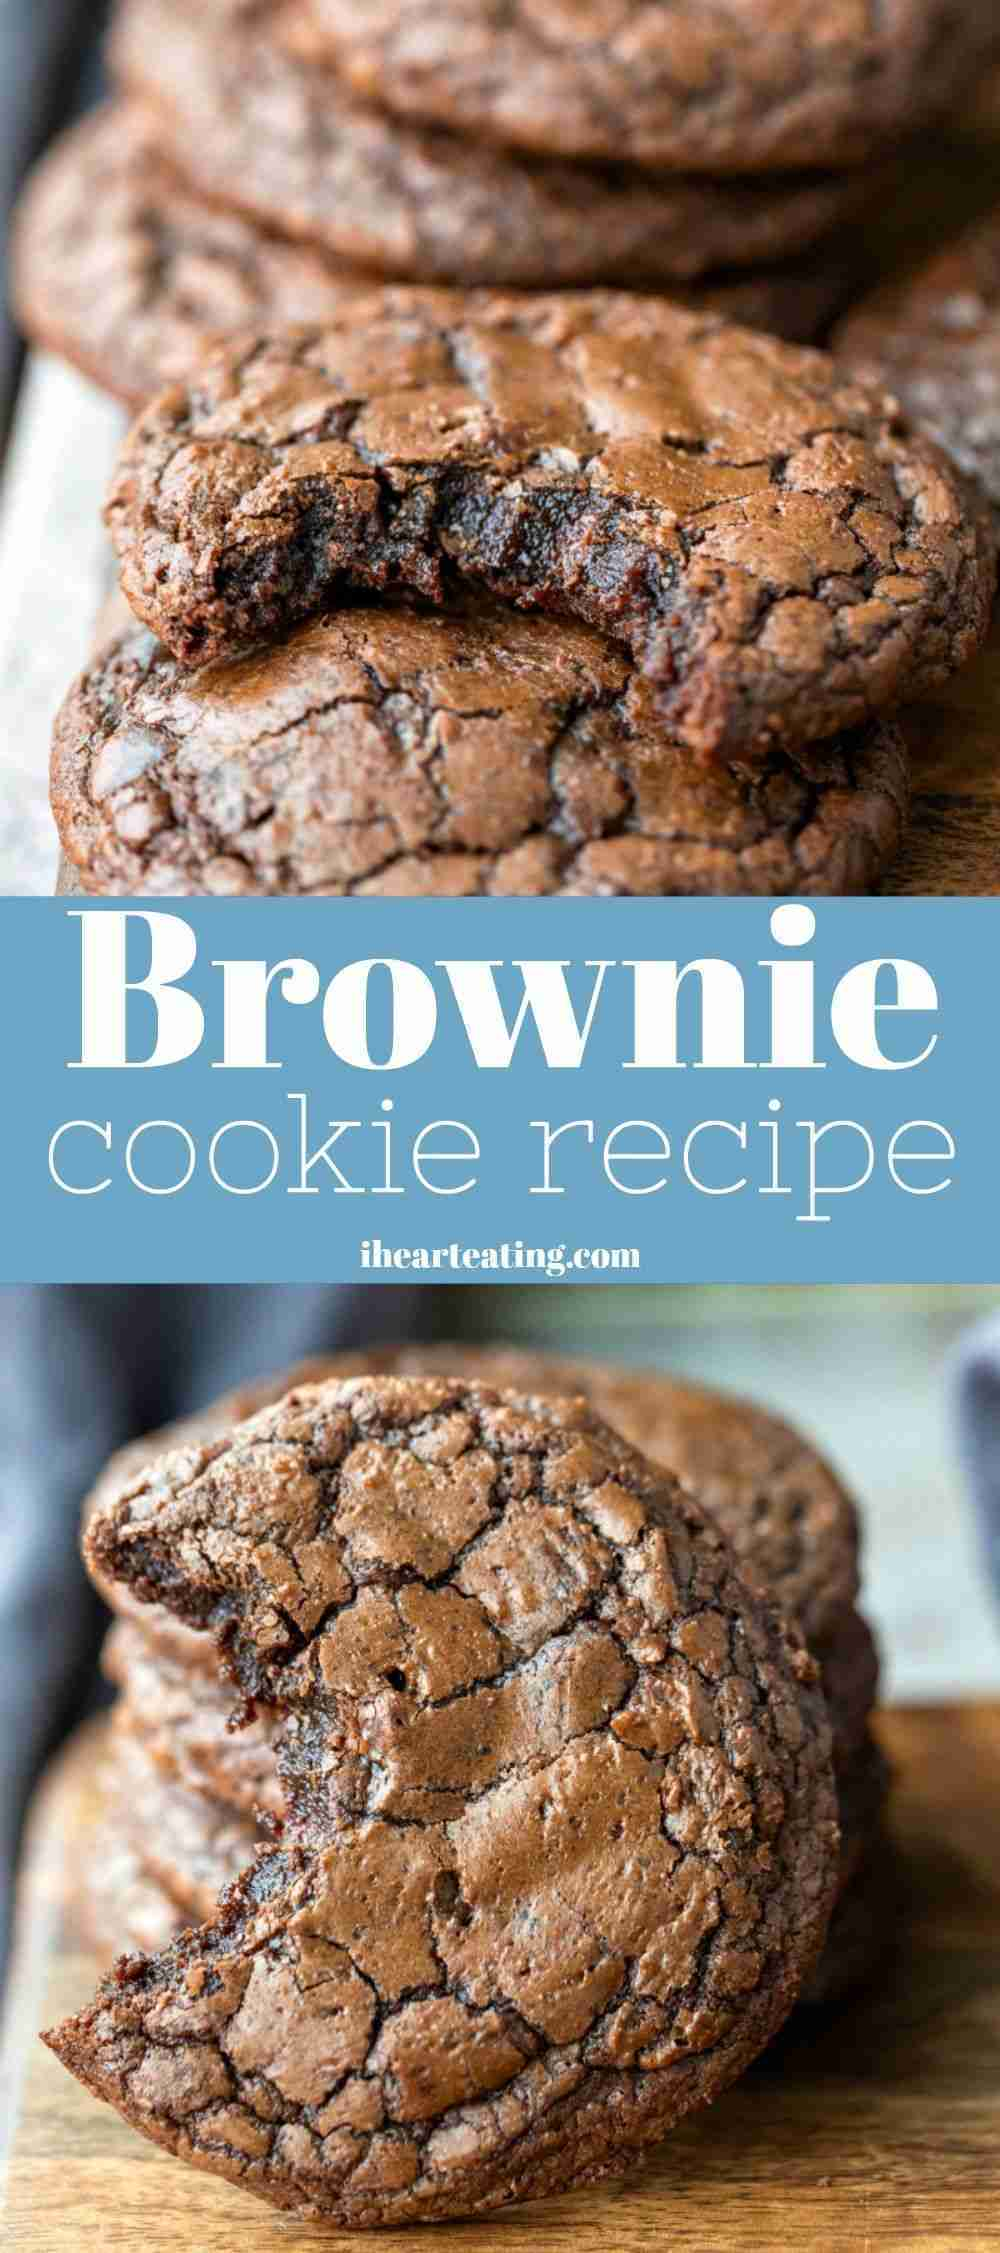 Family-Friendly Recipes Made with Love – I Heart Eating